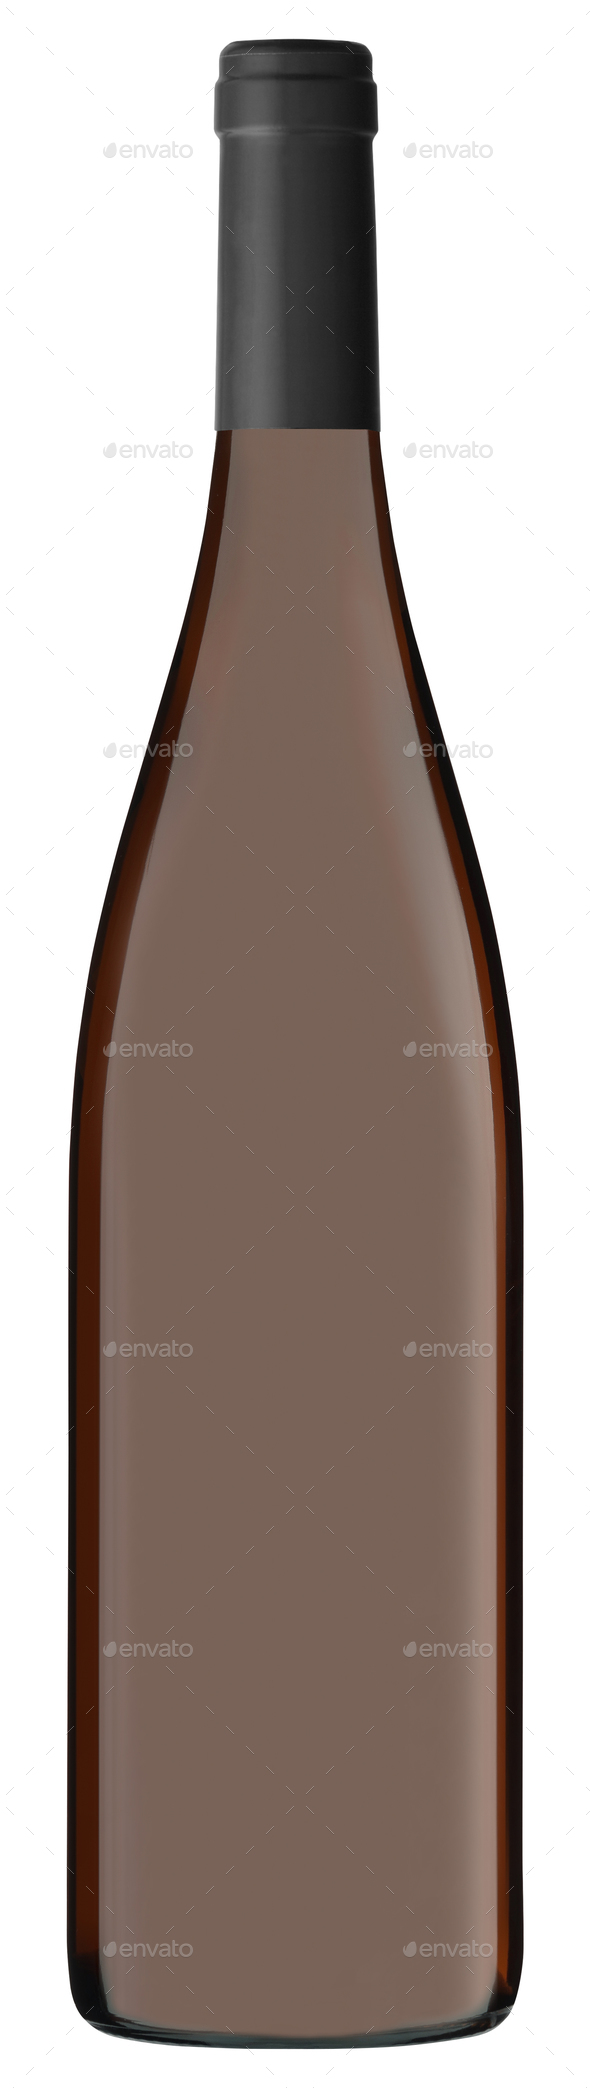 Champagne bottle on white background - Stock Photo - Images